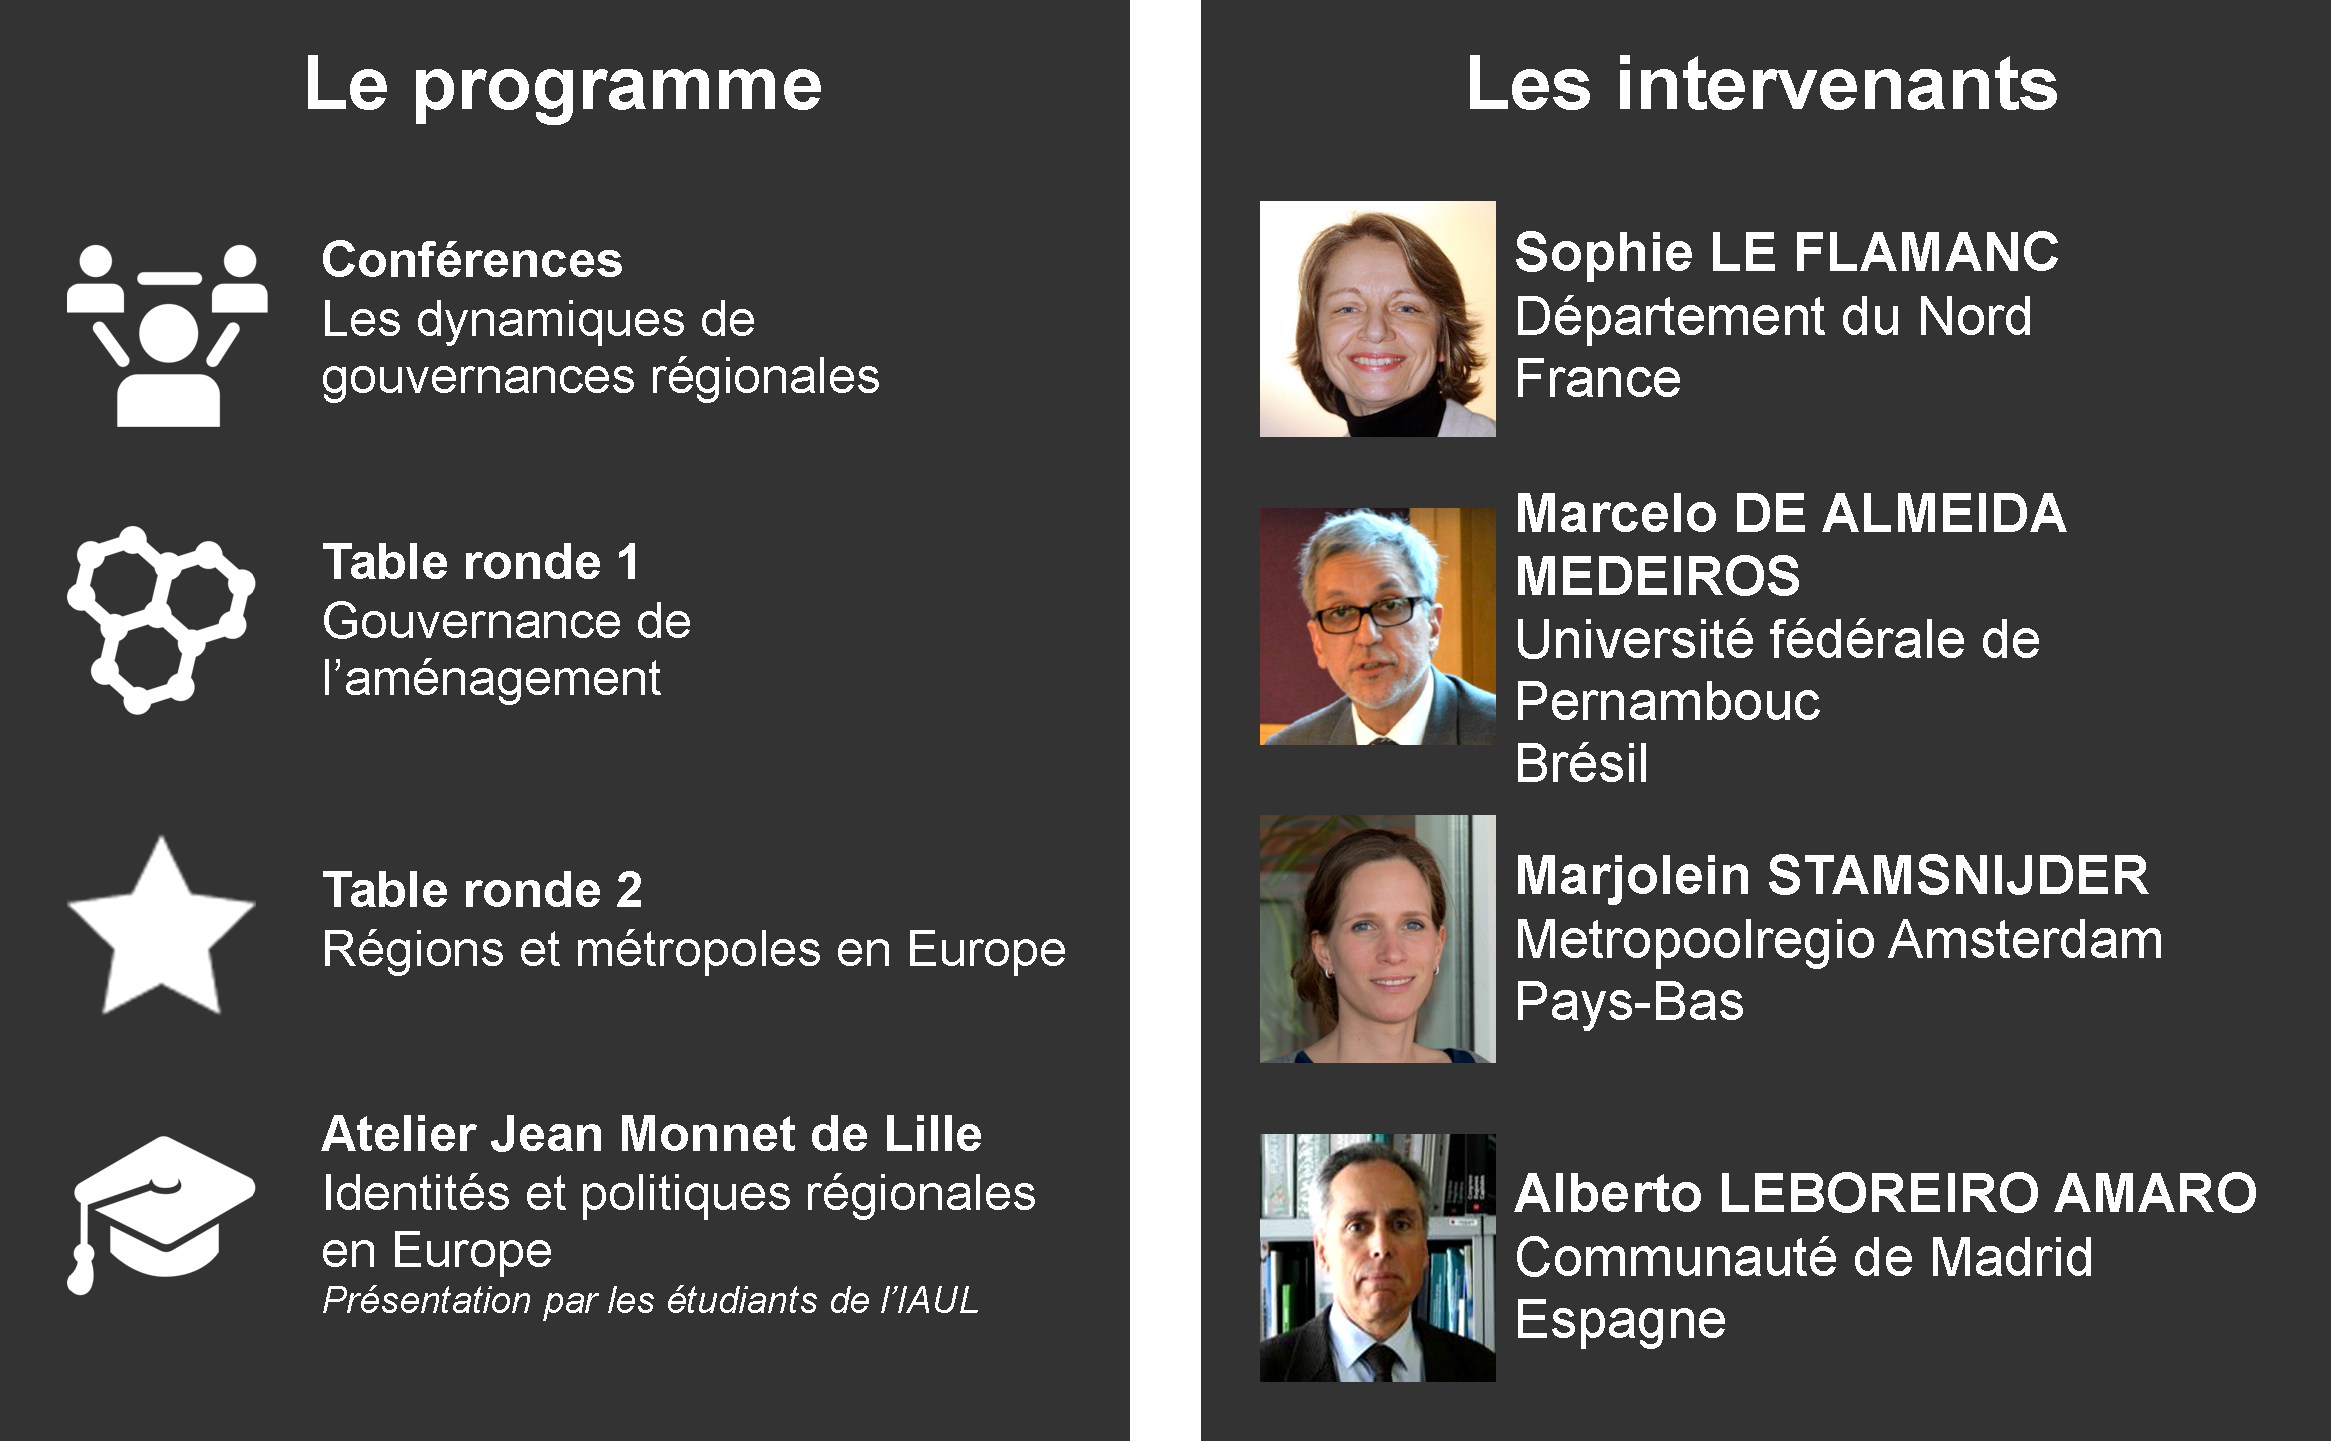 Programme et intervenants